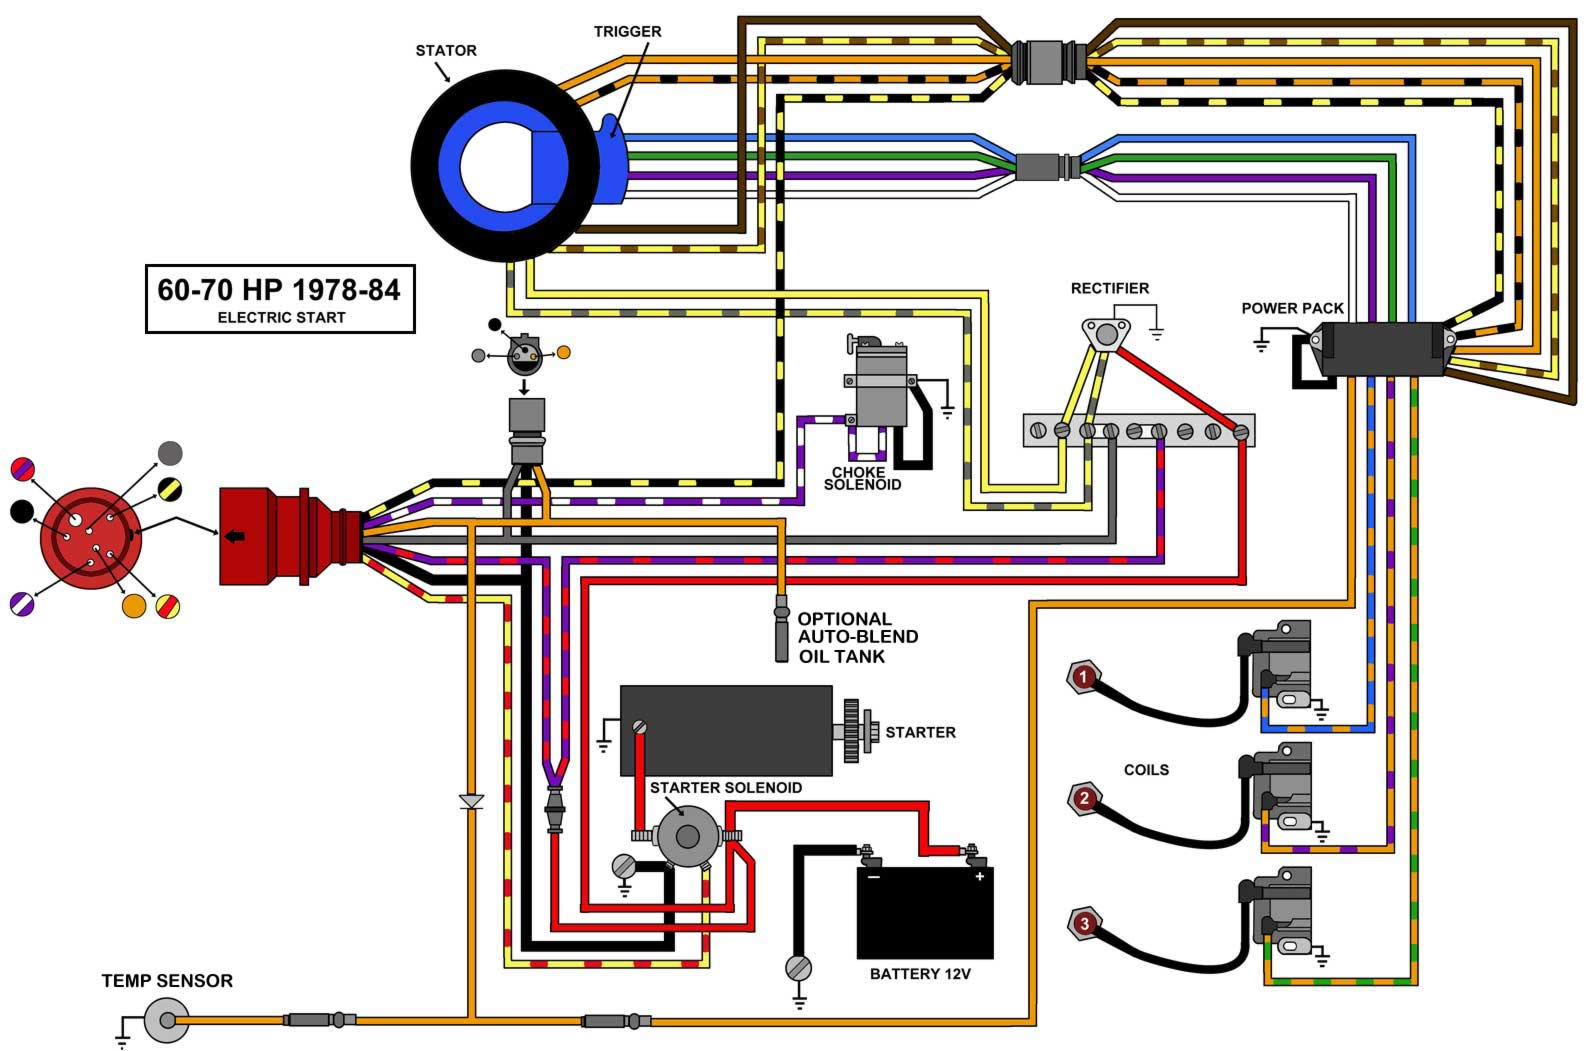 78 84_3 CYL_EL wiring tach from johnson controls page 1 iboats boating forums johnson red plug wiring diagram at pacquiaovsvargaslive.co